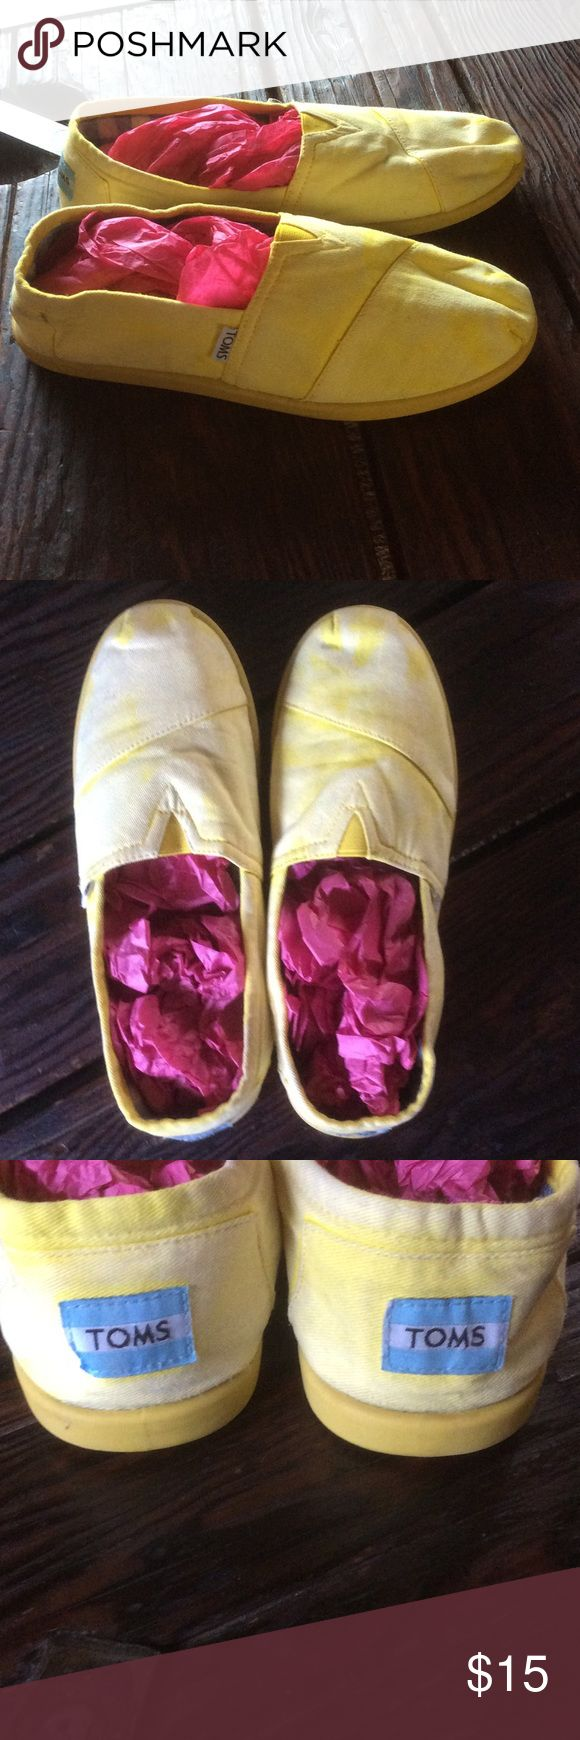 TOMS ONE FOR ONE YELLOW/white SLIP ONS TOMS ONE FOR ONE YELLOW SLIP ONS, good condition TOMS Shoes